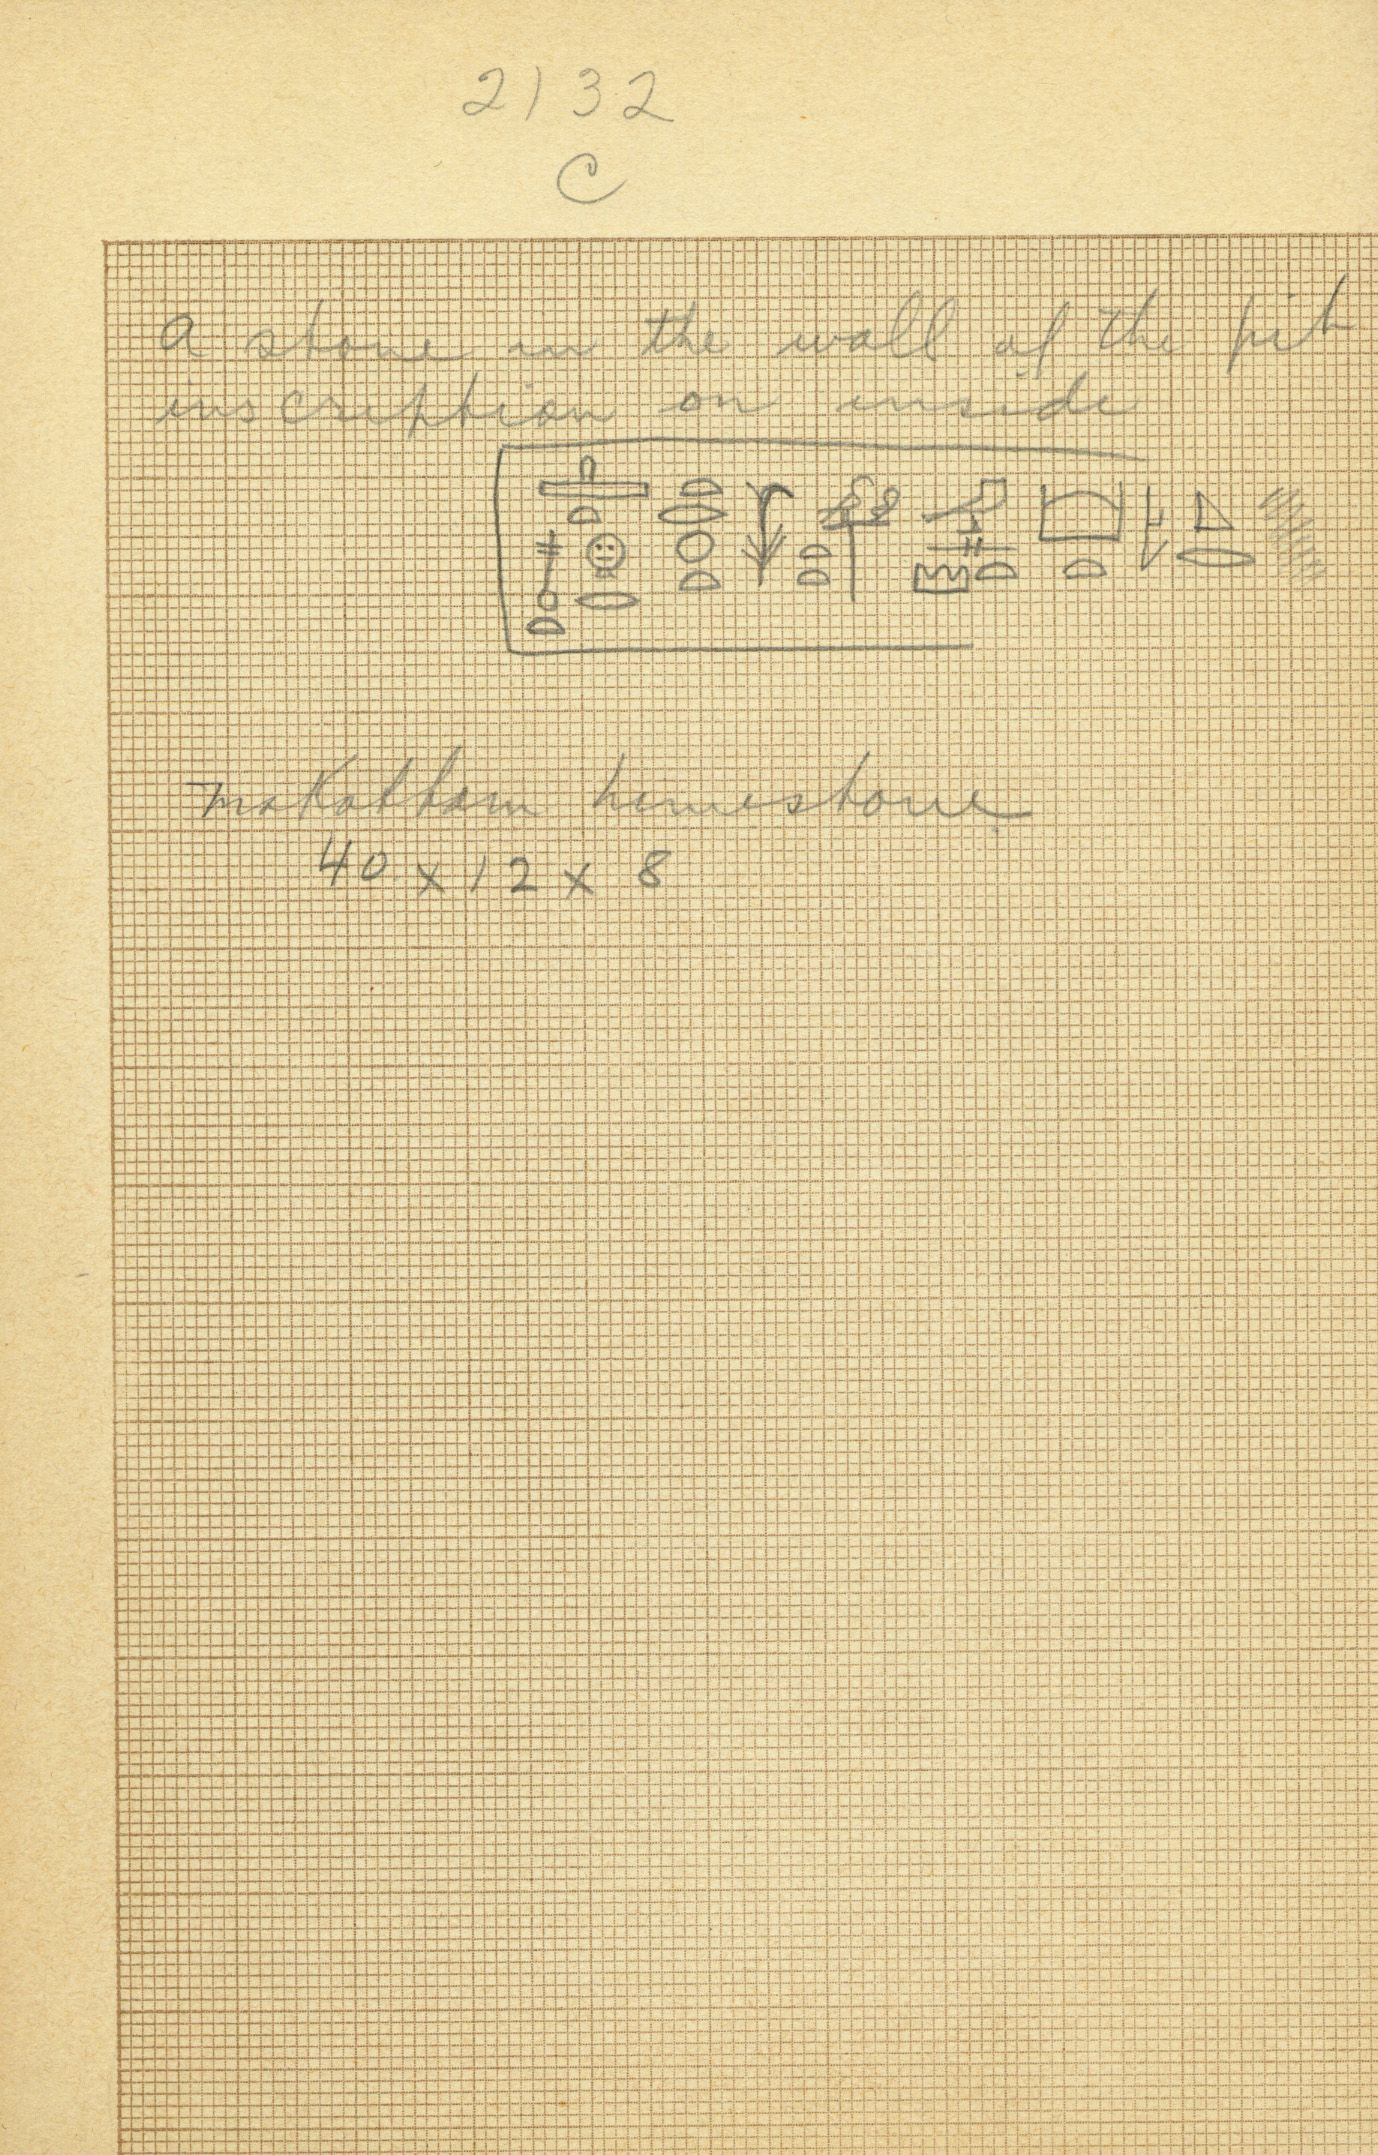 Drawings: G 2132, Shaft C, inscription notes